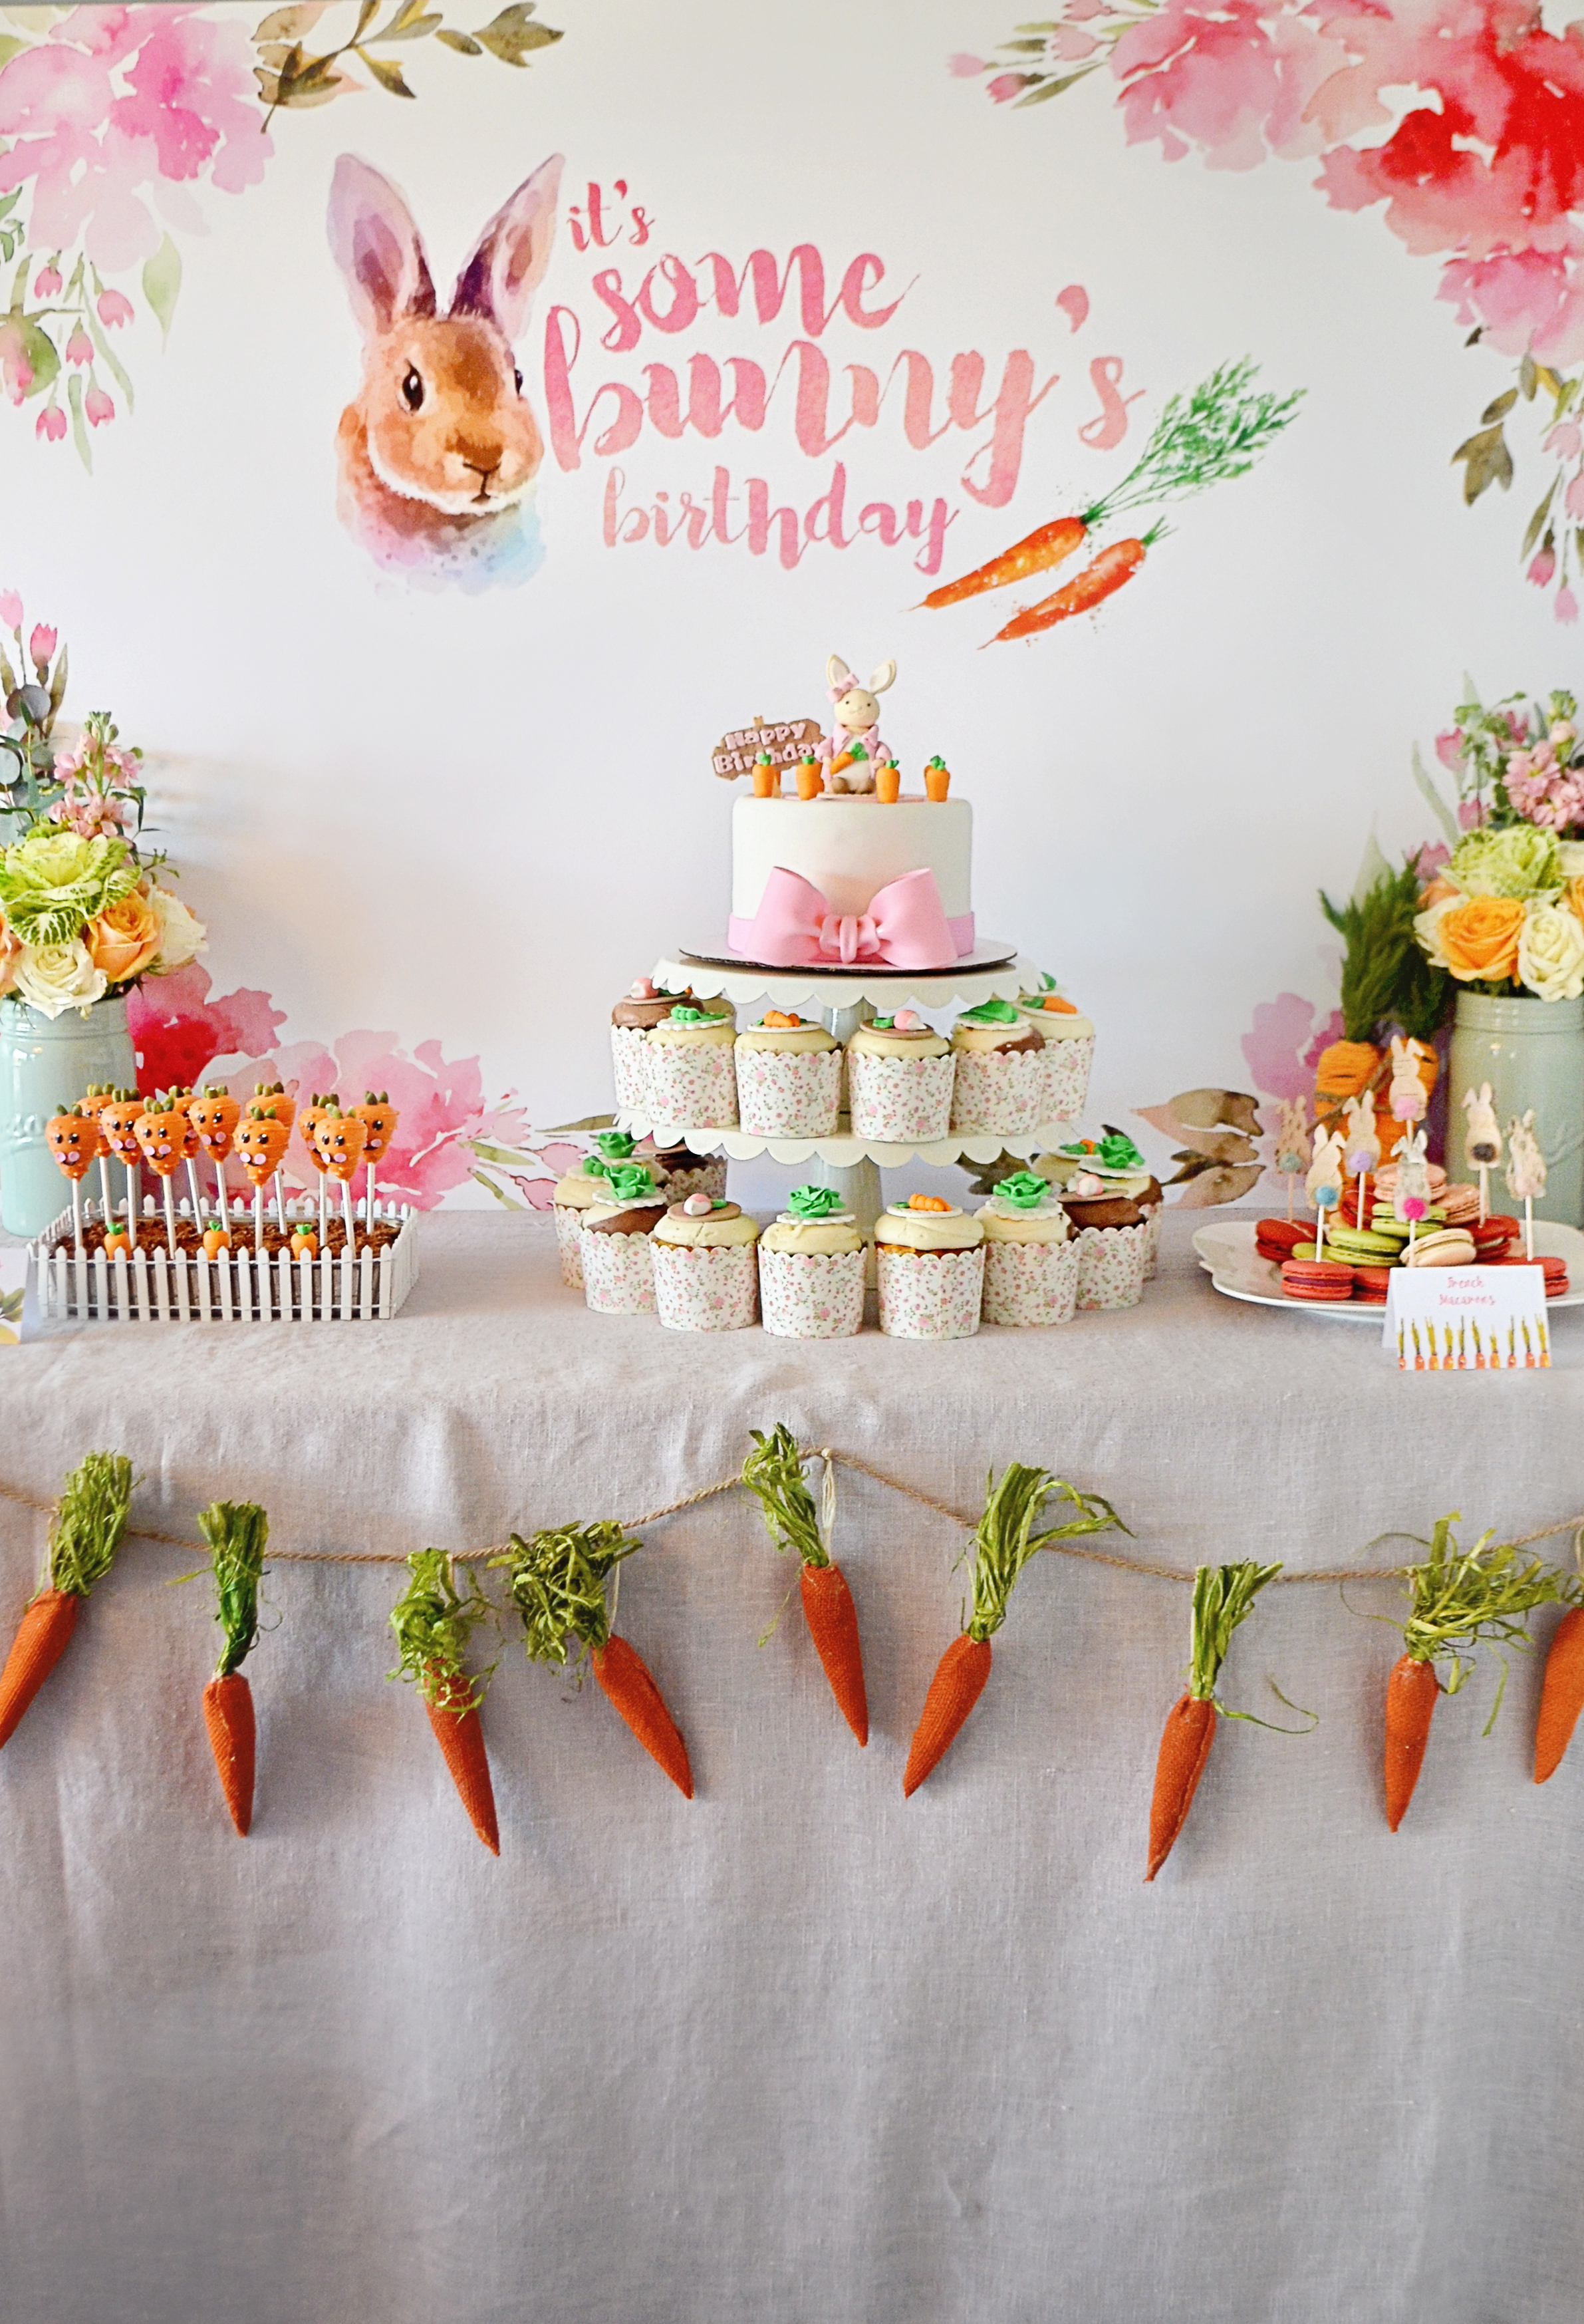 Bunny-Themed Birthday Party - Project Nursery